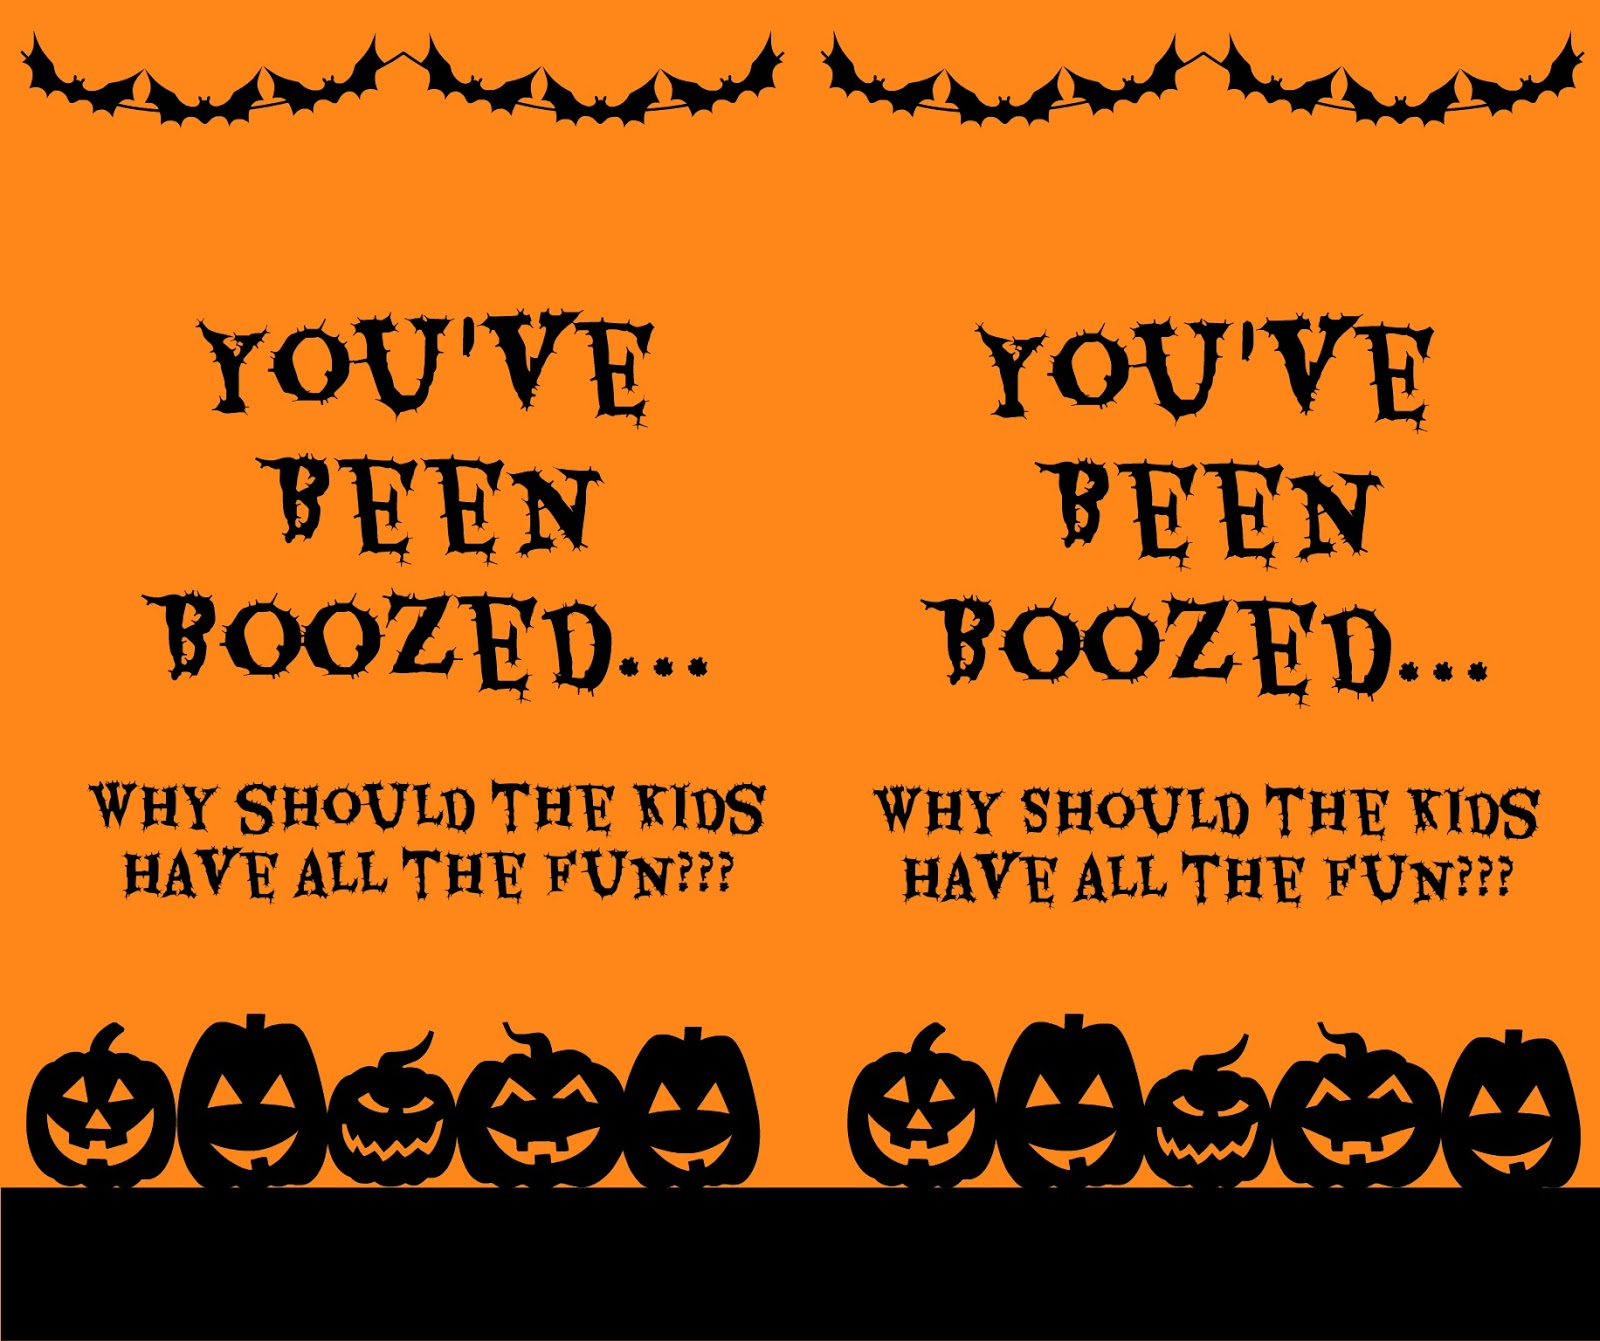 image relating to You've Been Boozed Printable referred to as The Content Minimal Hive: Youve Been Boozed [Edition 2]